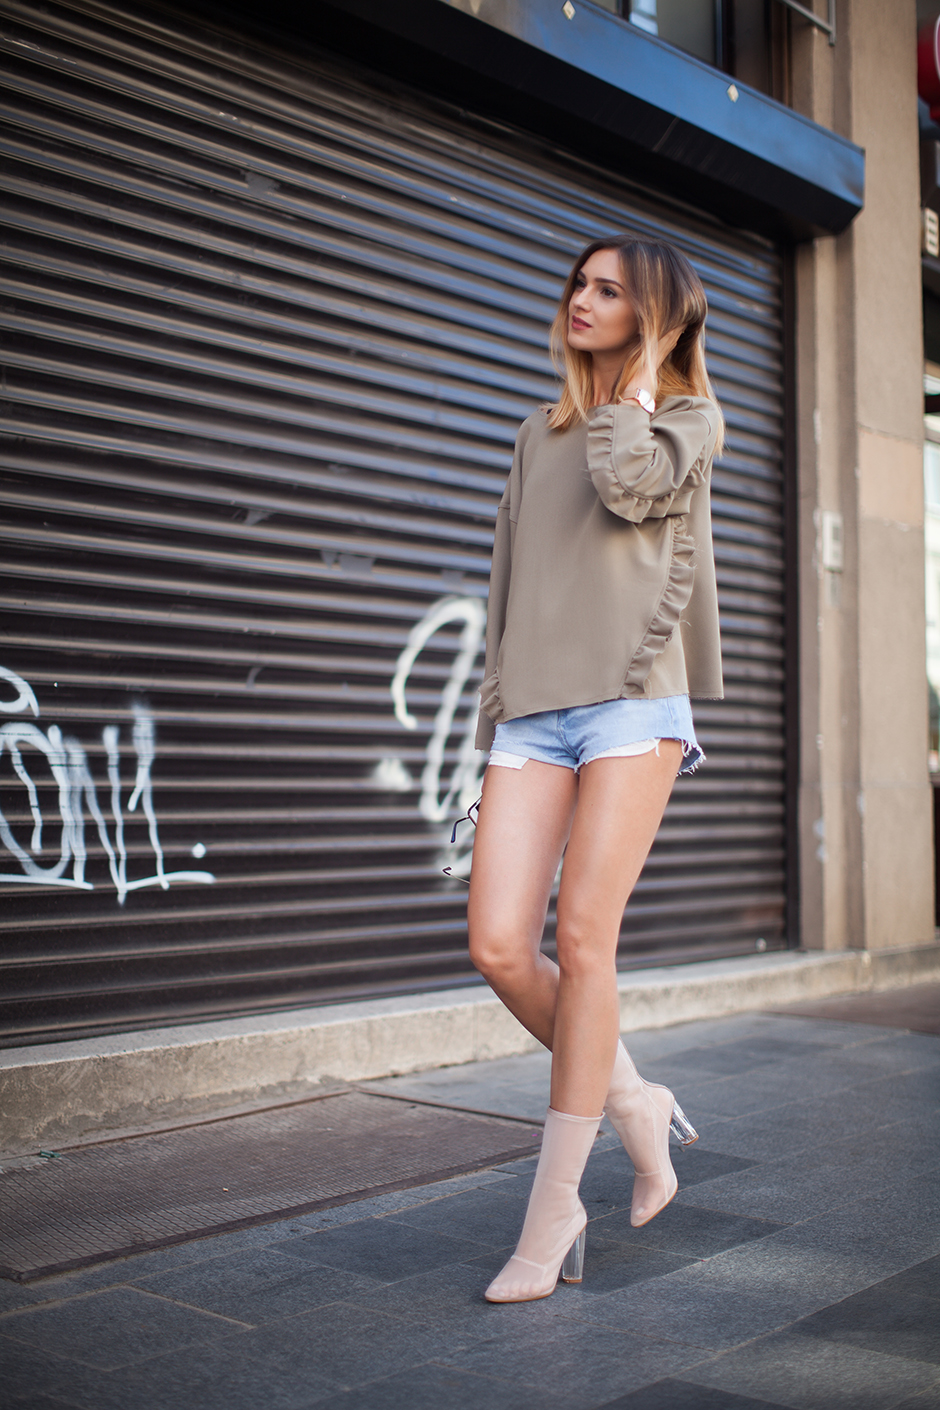 fashion-blog-denim-shorts-khaki-sweatshirt-mesh-boots-street-style-outfit